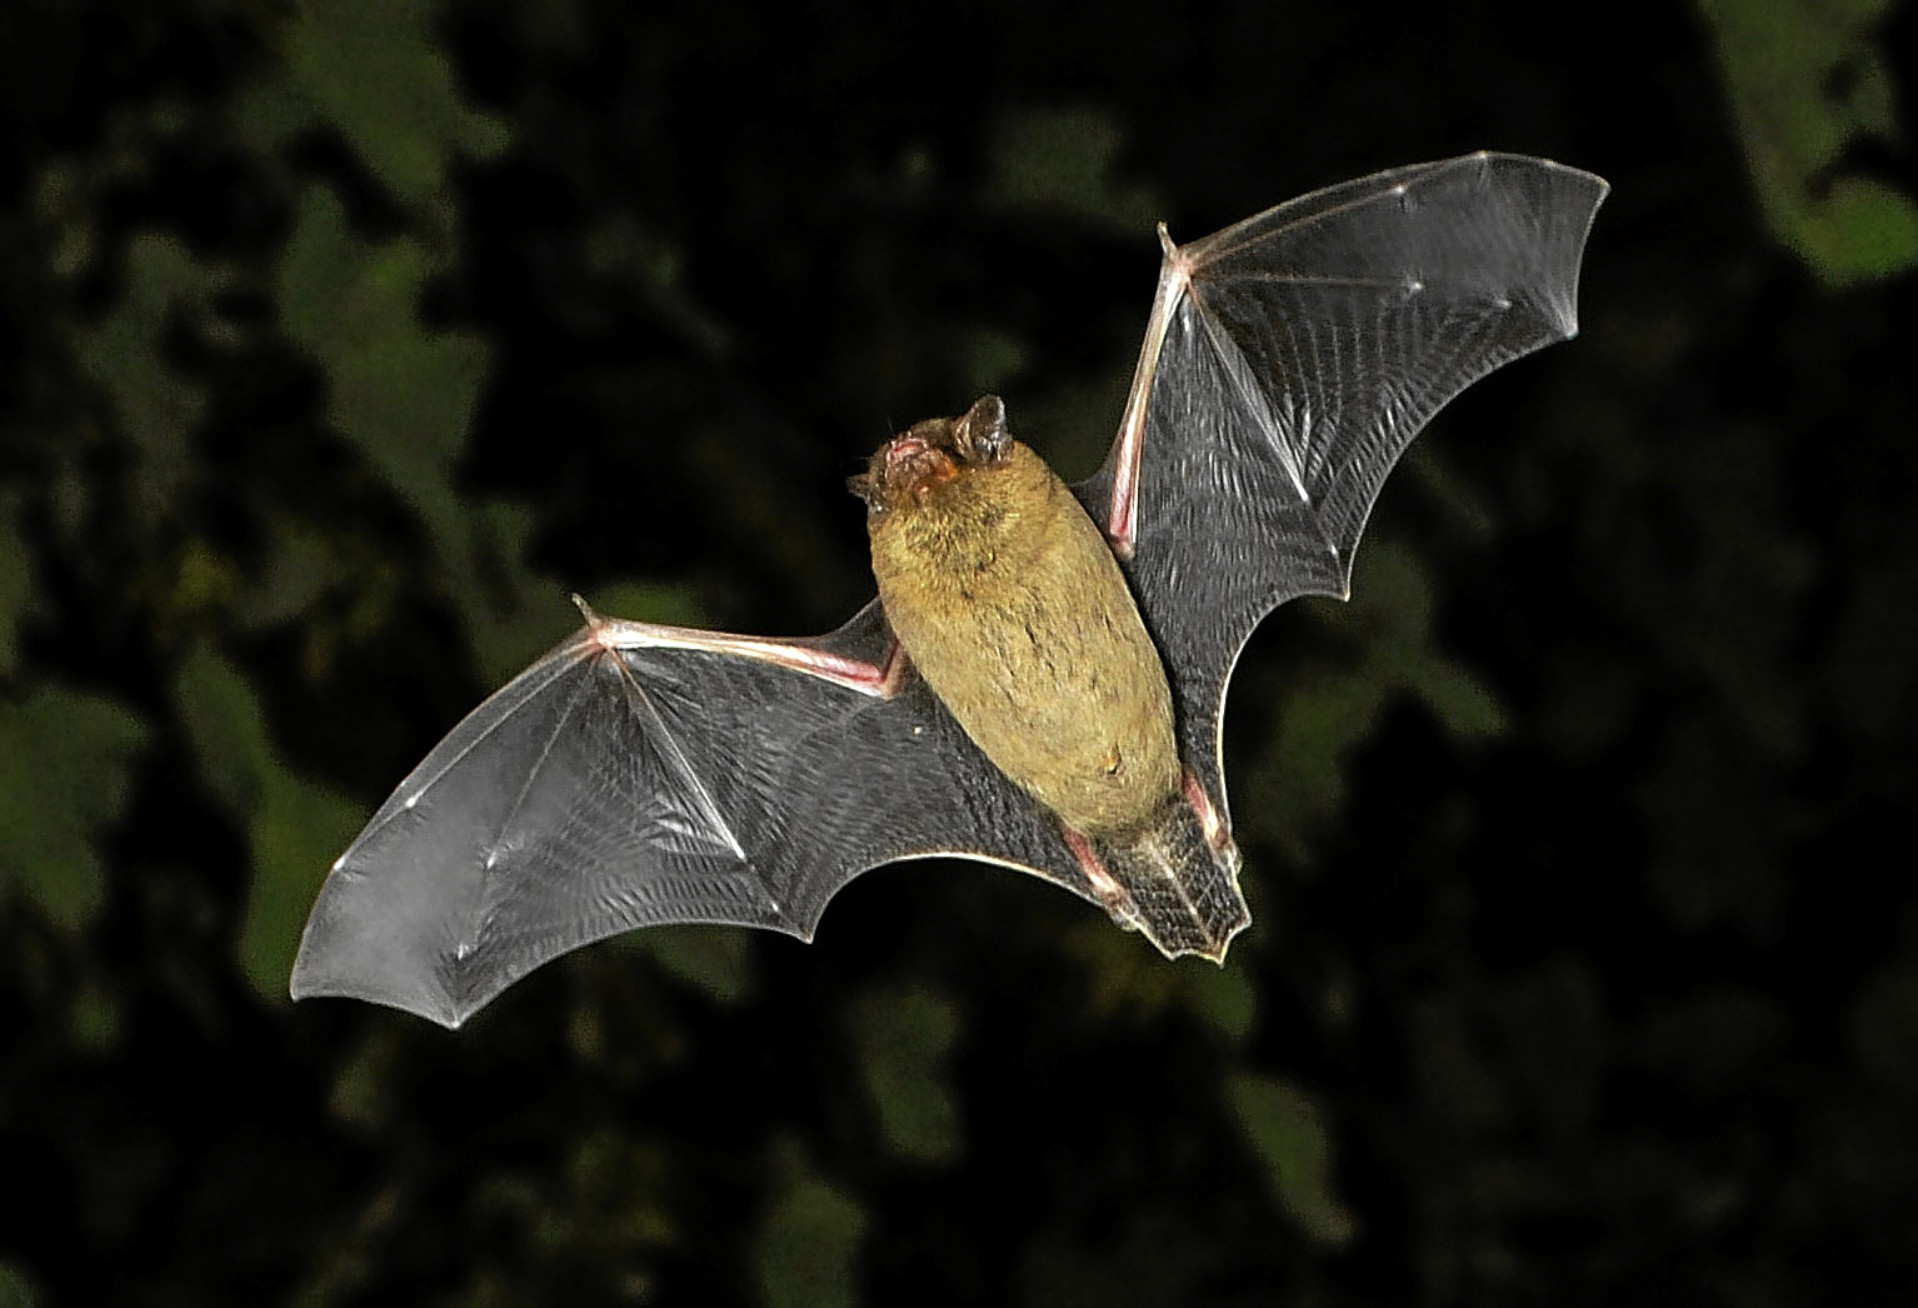 Locals will have the chance to see bats like this at the event.